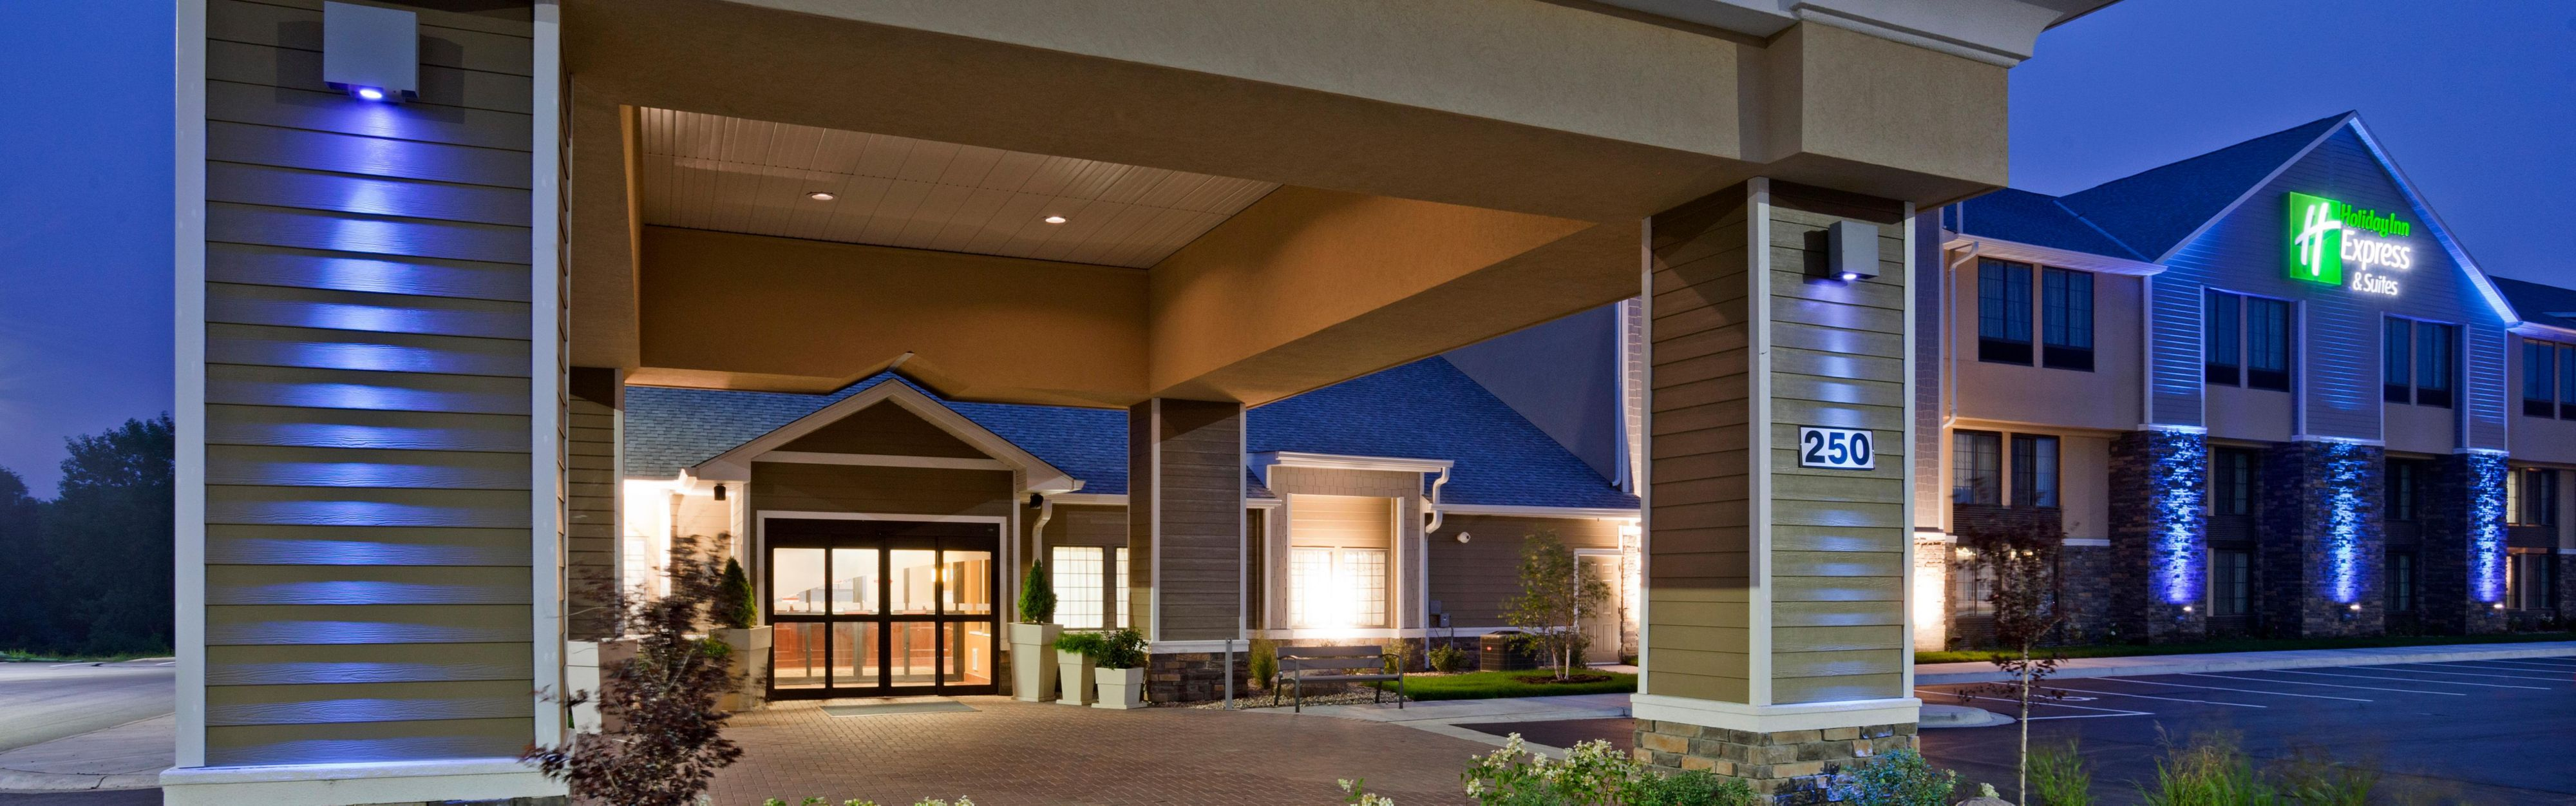 Holiday Inn Express & Suites Willmar image 0